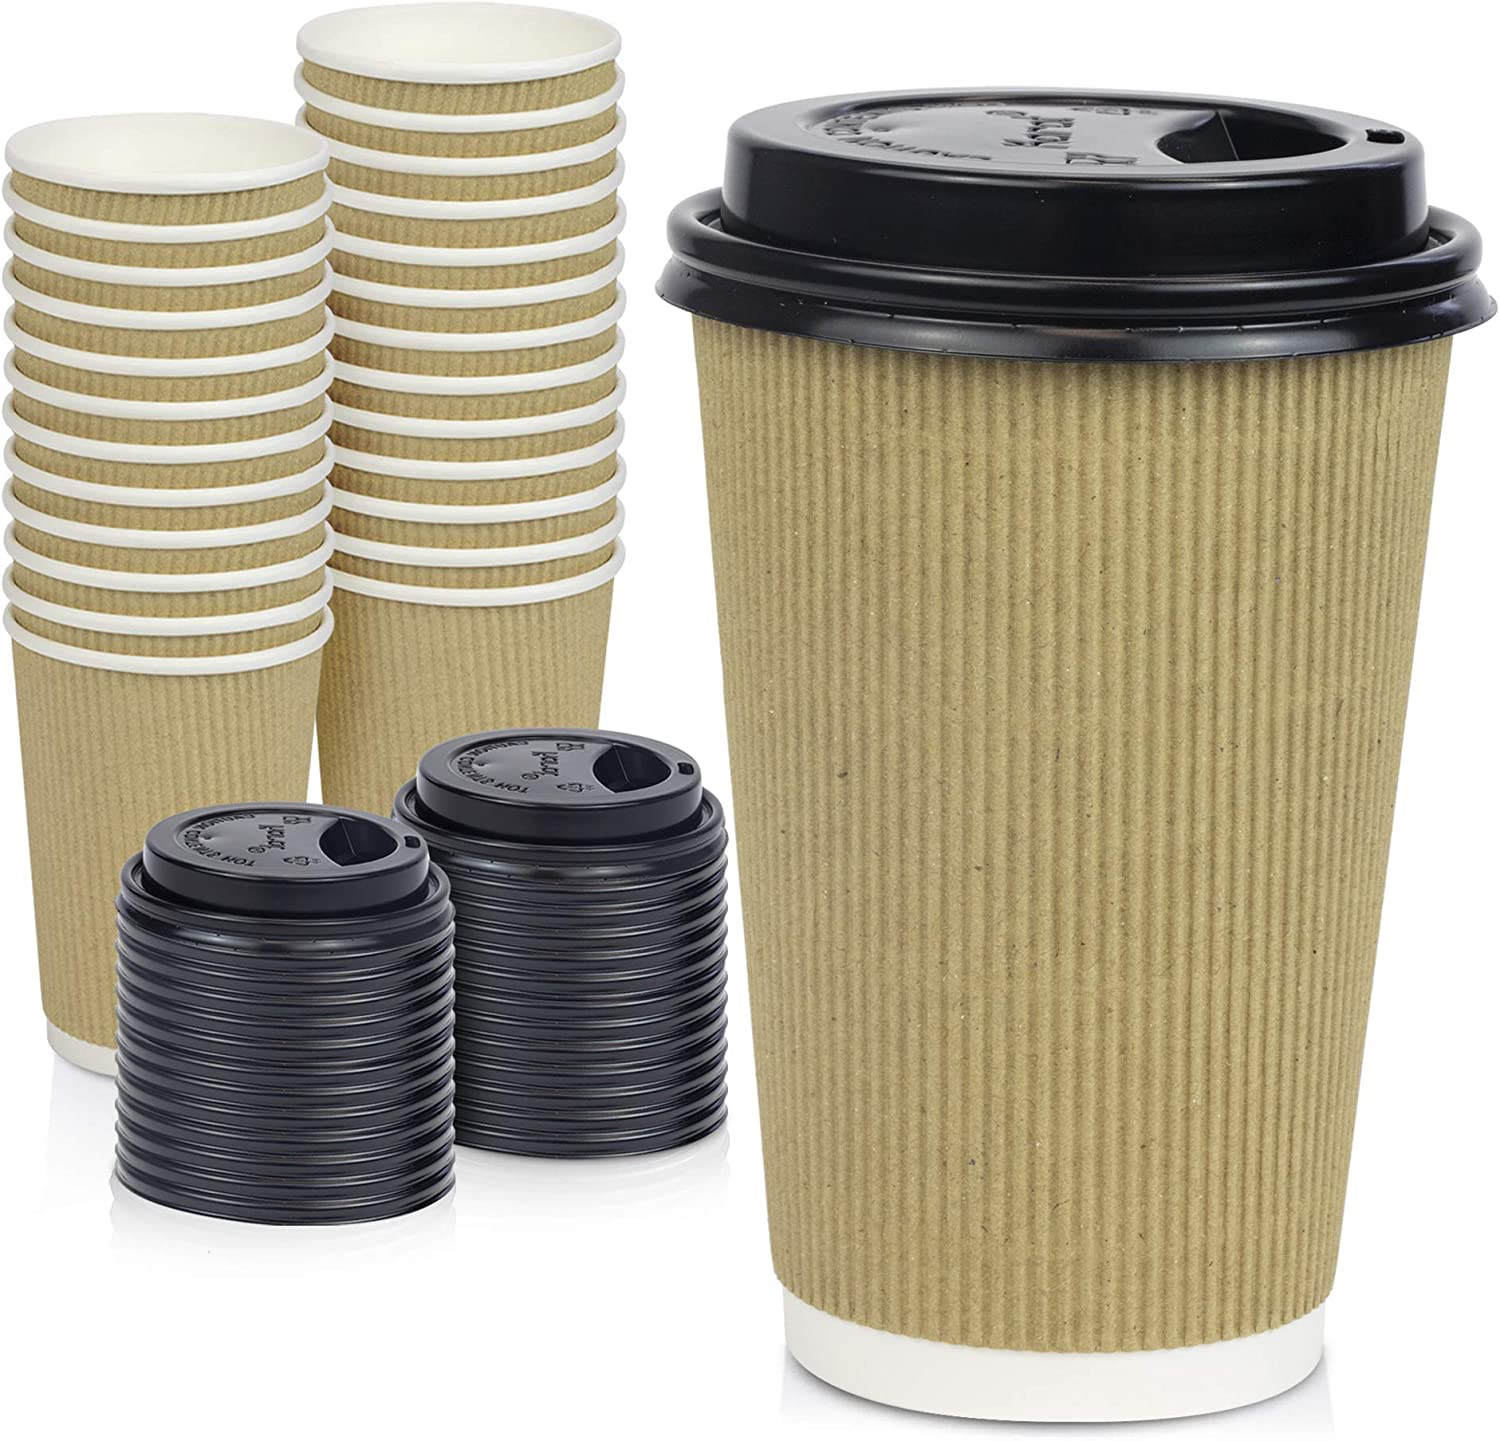 [50 Pack] Disposable Hot Cups with Lids - 16 oz Brown Double Wall Insulated Ripple Sleeves Coffee Cups with Black Dome Lid - Kraft Paper Cup for To Go Chocolate, Tea, and Cocoa Drinks